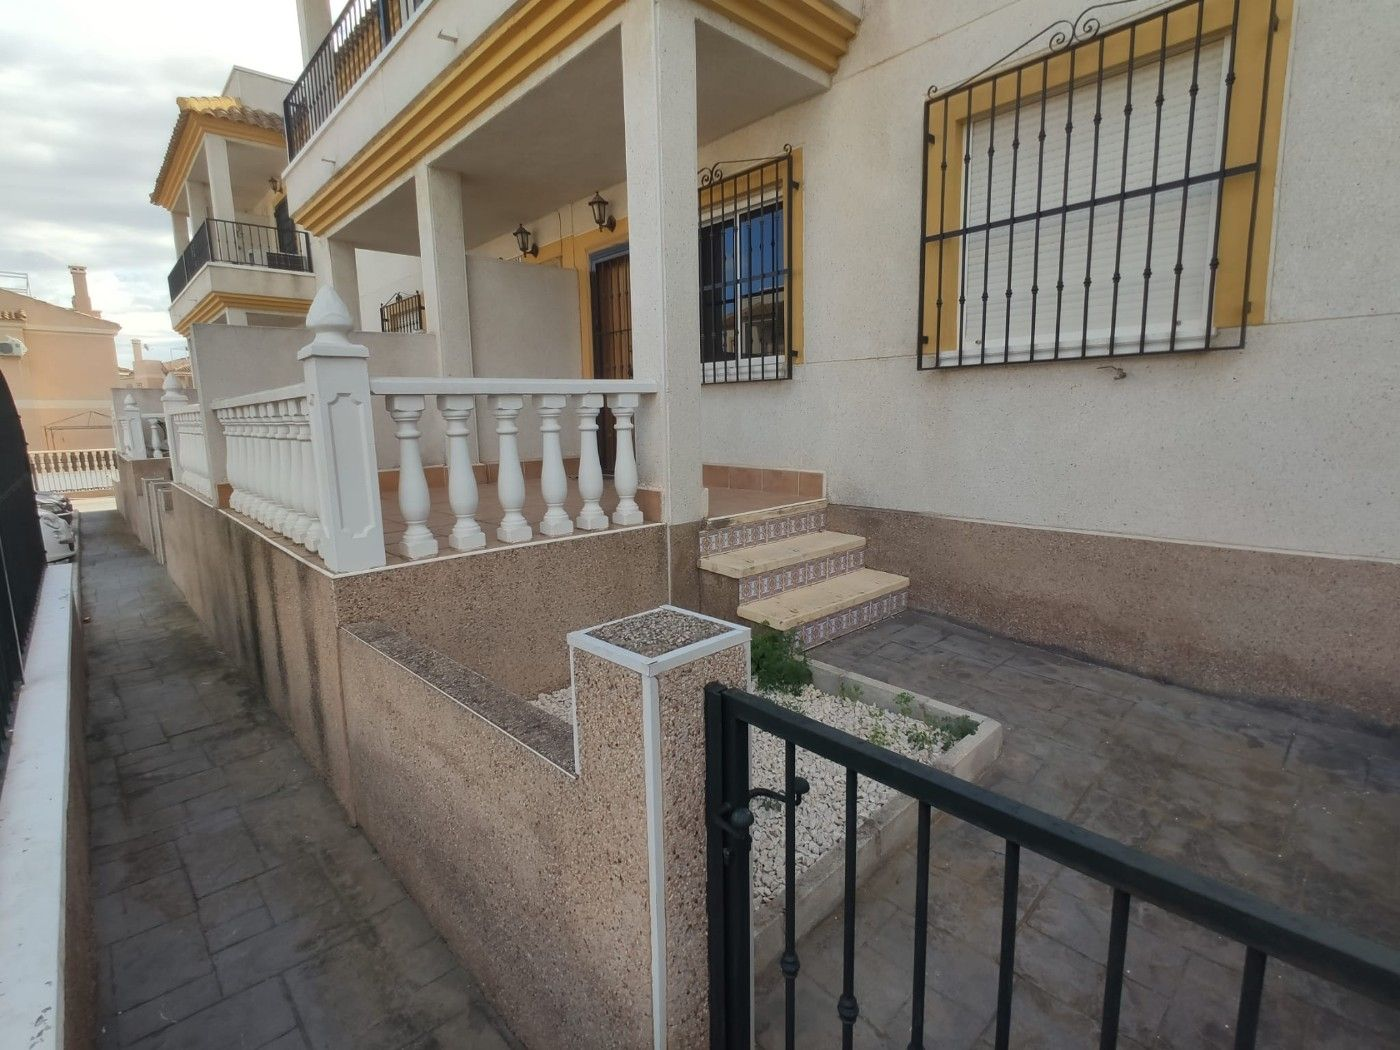 Appartement in Calle camilo jose cela, 3. Ideal piso en algorfa